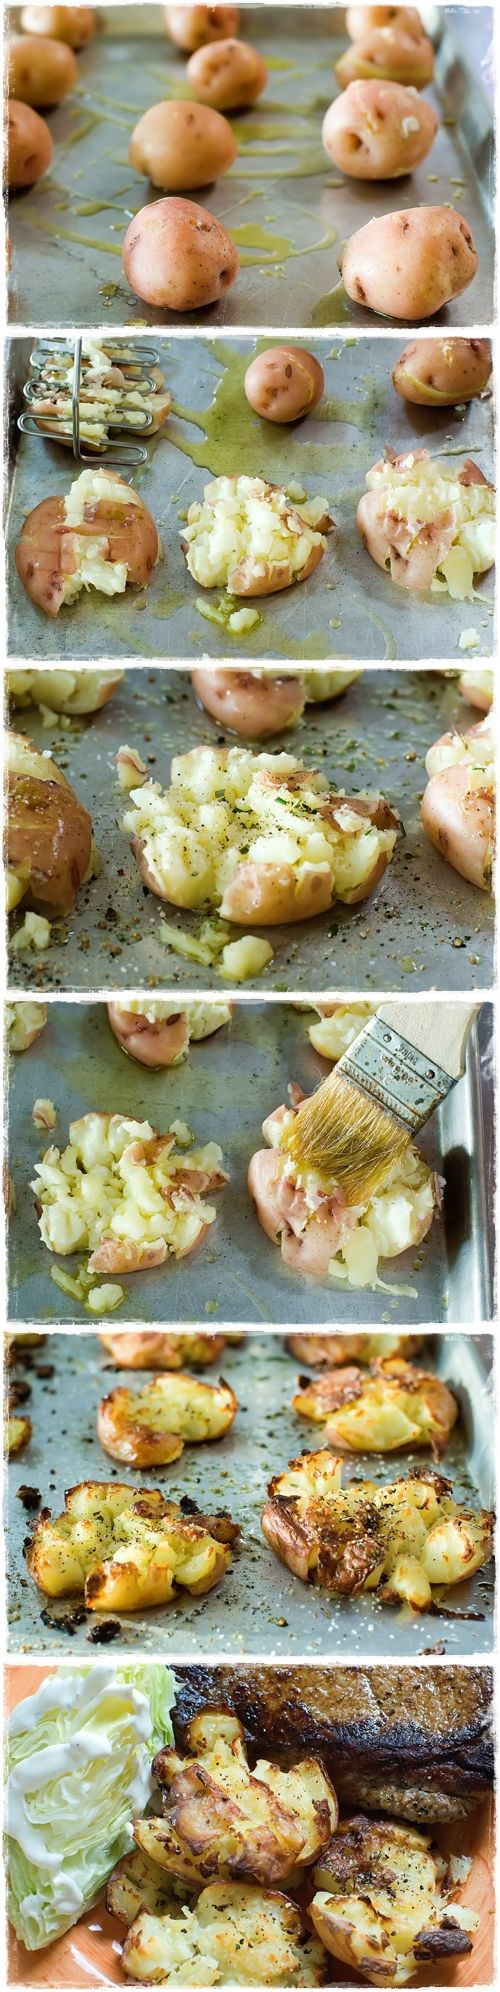 joysama images: CRASH HOT POTATOES  I must make these!!!  I must eat these!!  I must!  You??